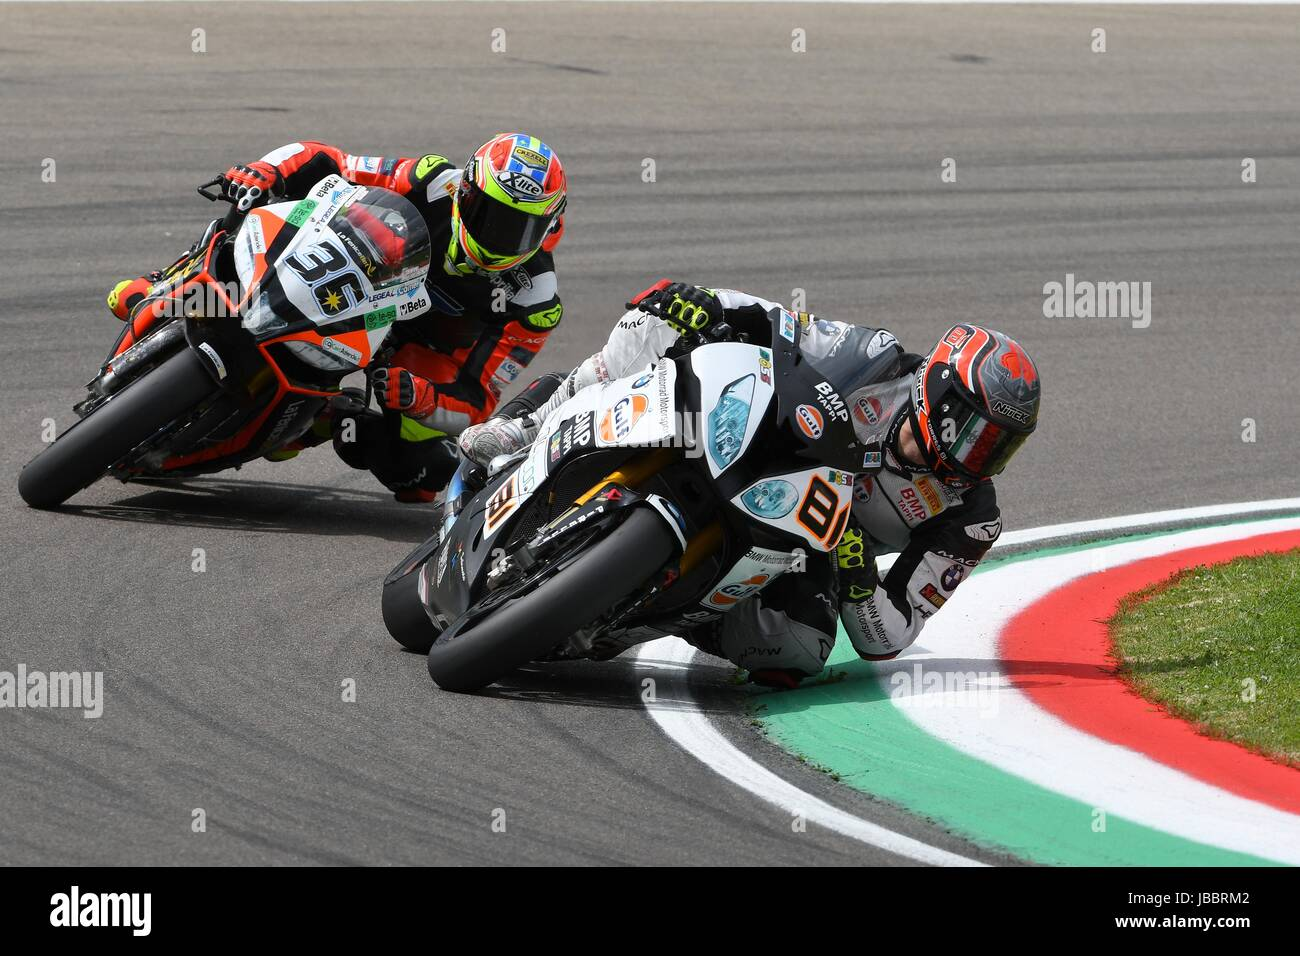 San Marino, Italy - May 12: Jordi Torres ESP BMW S 1000 RR Althea BMW Racing Team during qualifyng session at the Stock Photo